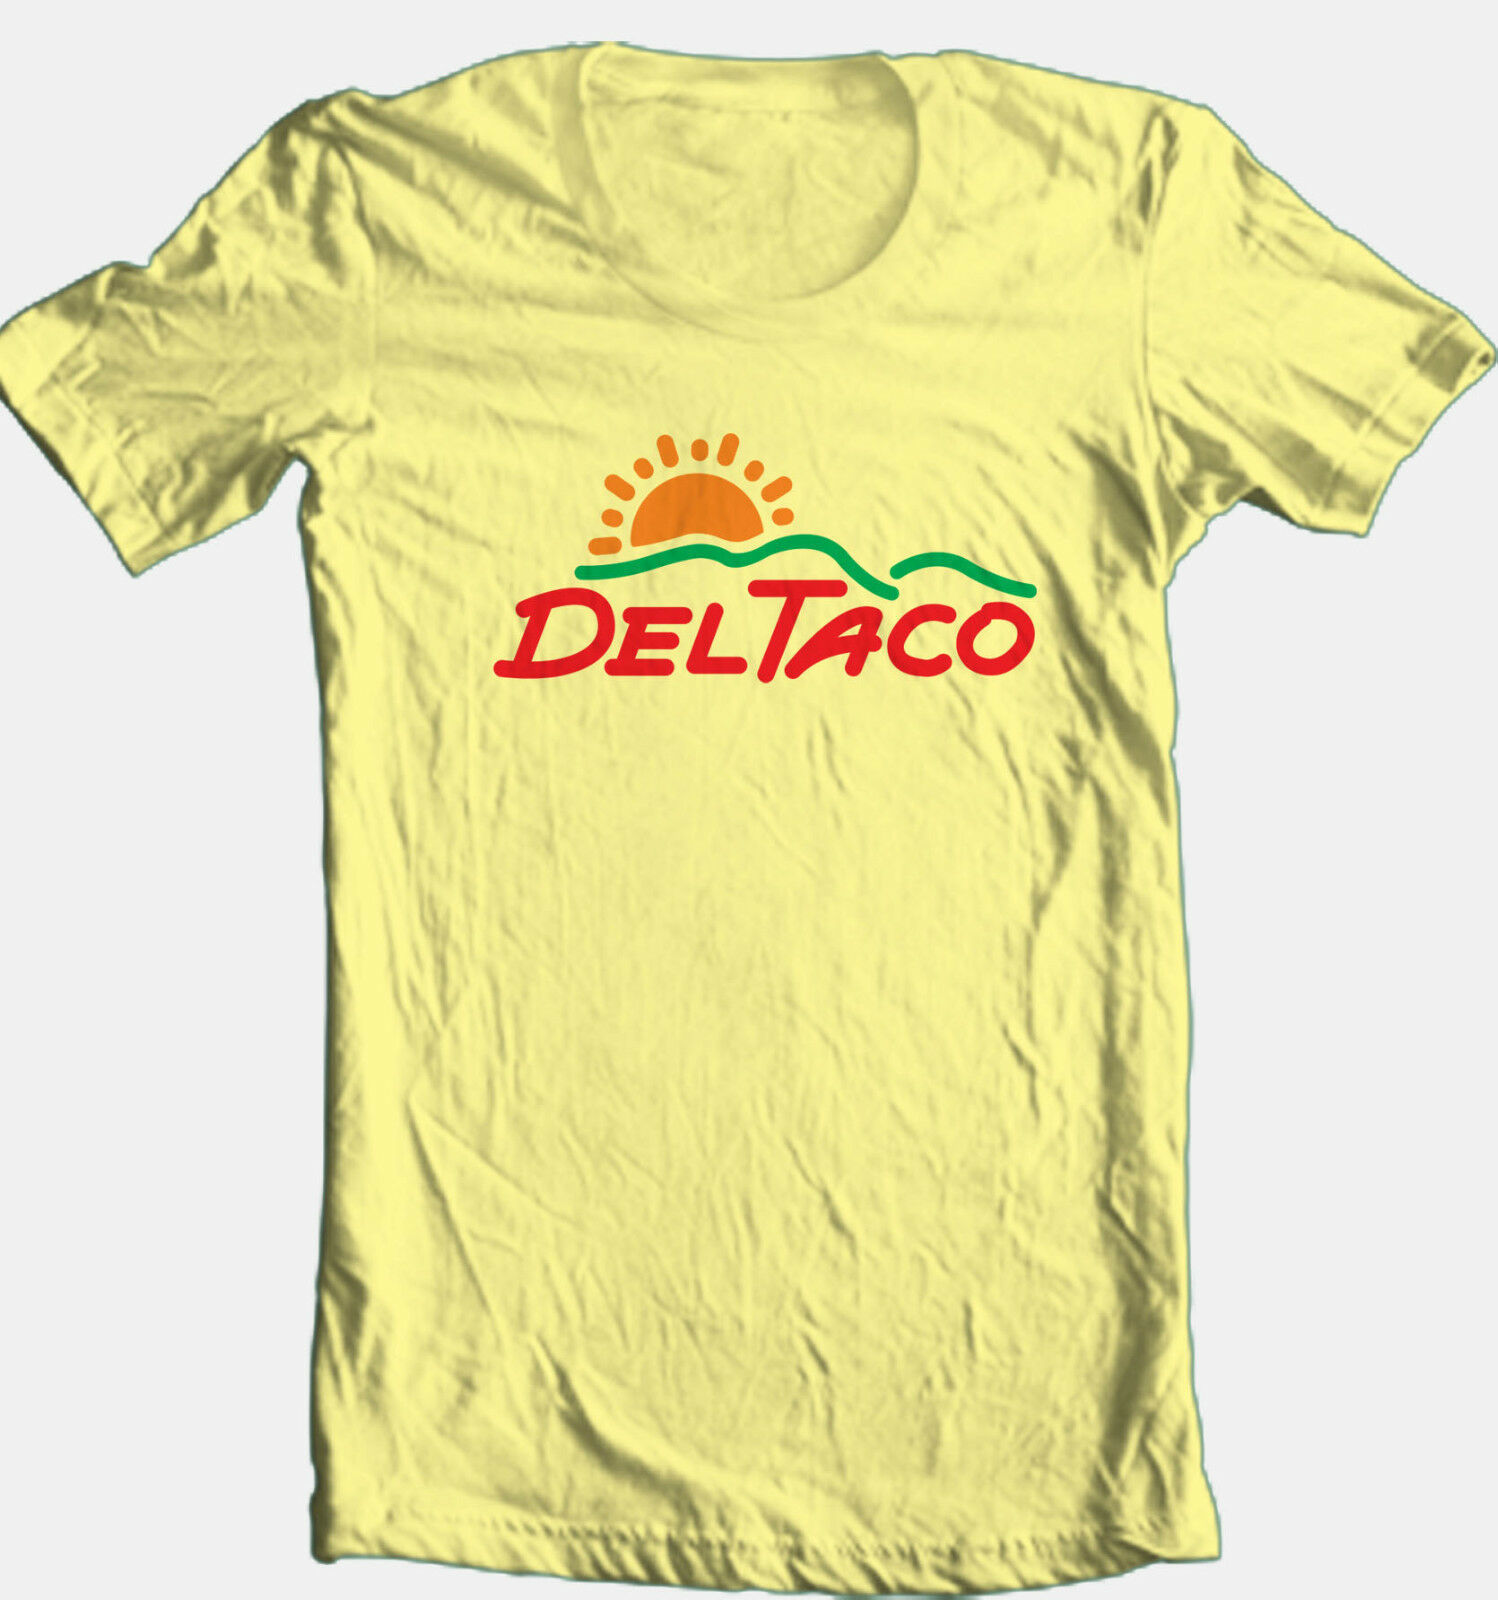 Del Taco T-shirt retro vintage style 70's fast food cotton graphic yellow tee